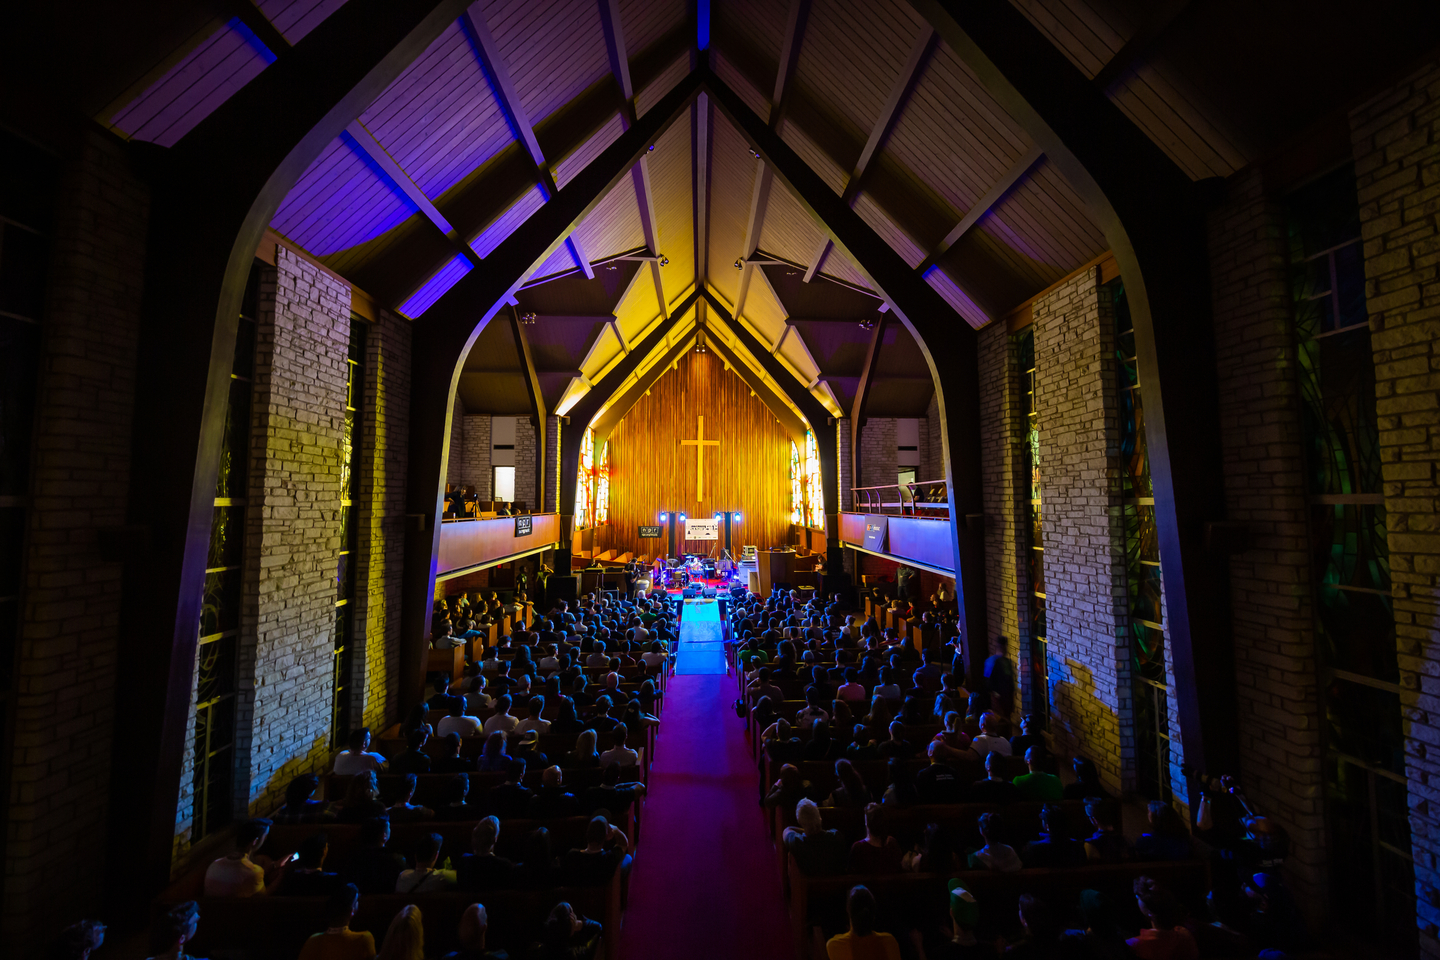 NPR brought their Tiny Desk Concert series to SXSW at Central Presbyterian Church.